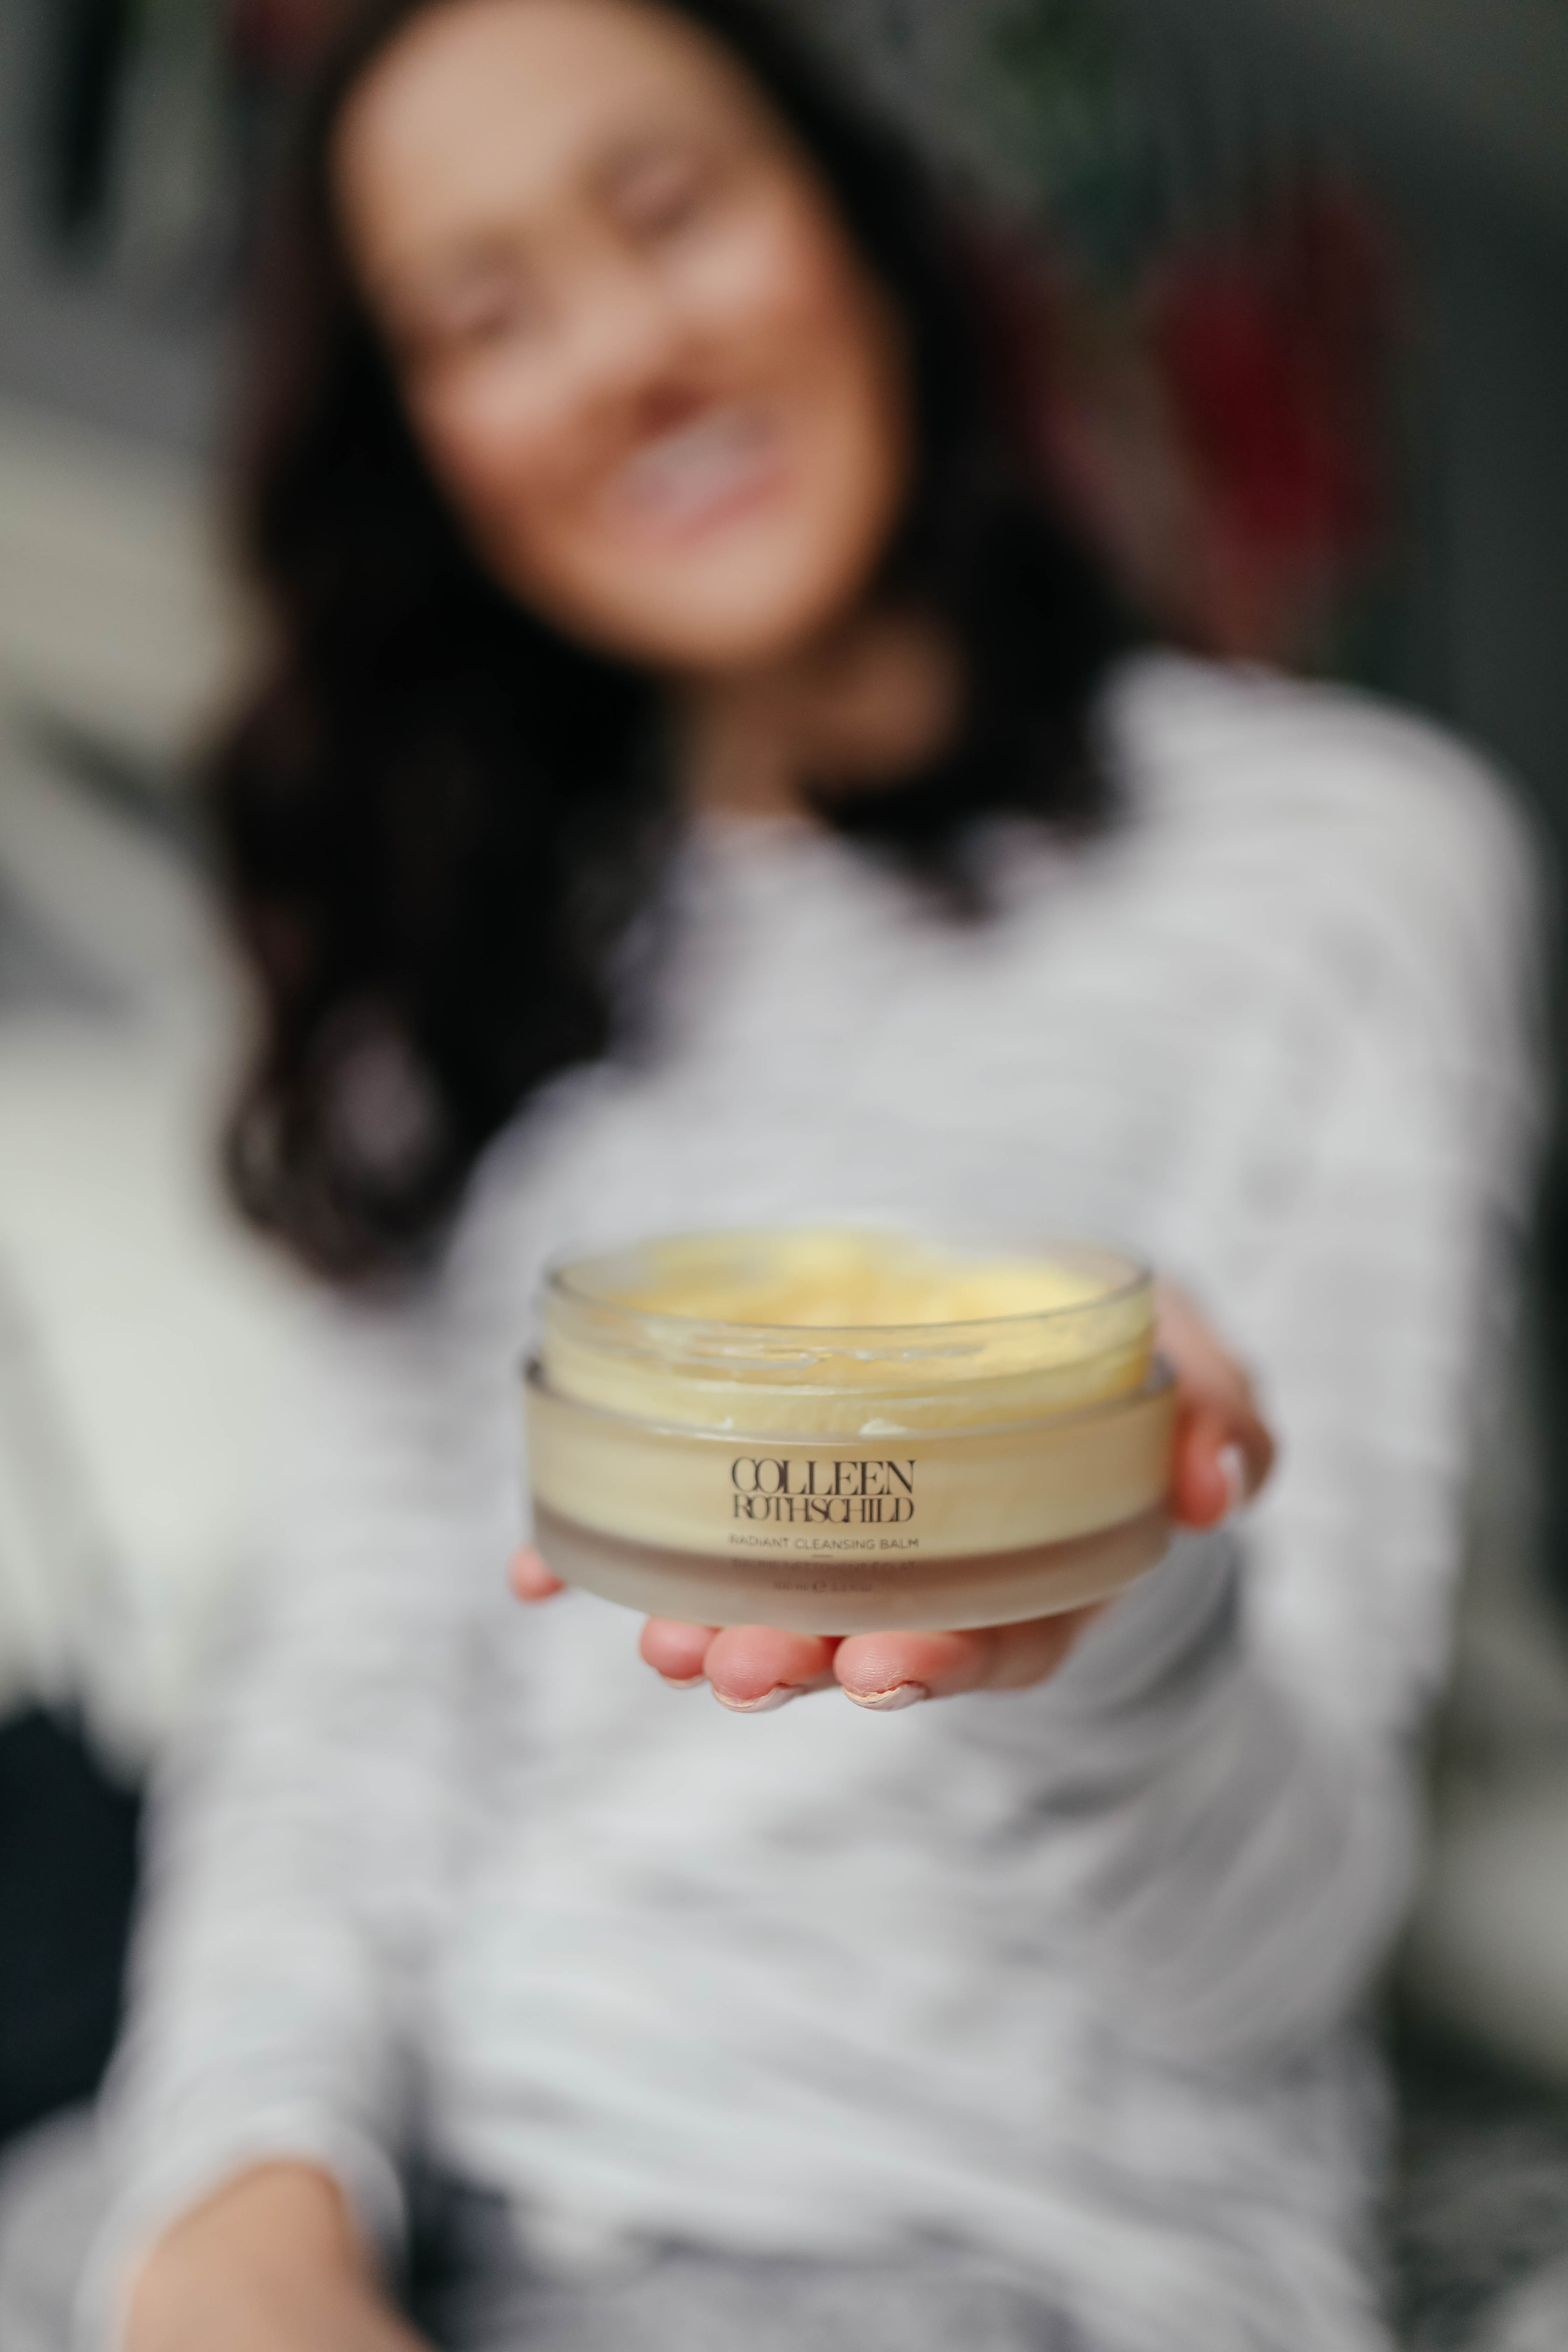 Colleen Rothschild Radiant Cleansing Balm - - Colleen Rothschild Intensive Hydrating Mask - colleen rotschild restorative hand cream - 7 Shifts to your Skin + Hair Routines to Stay Hydrated this Season on Coming Up Roses - Colleen Rothschild SALE